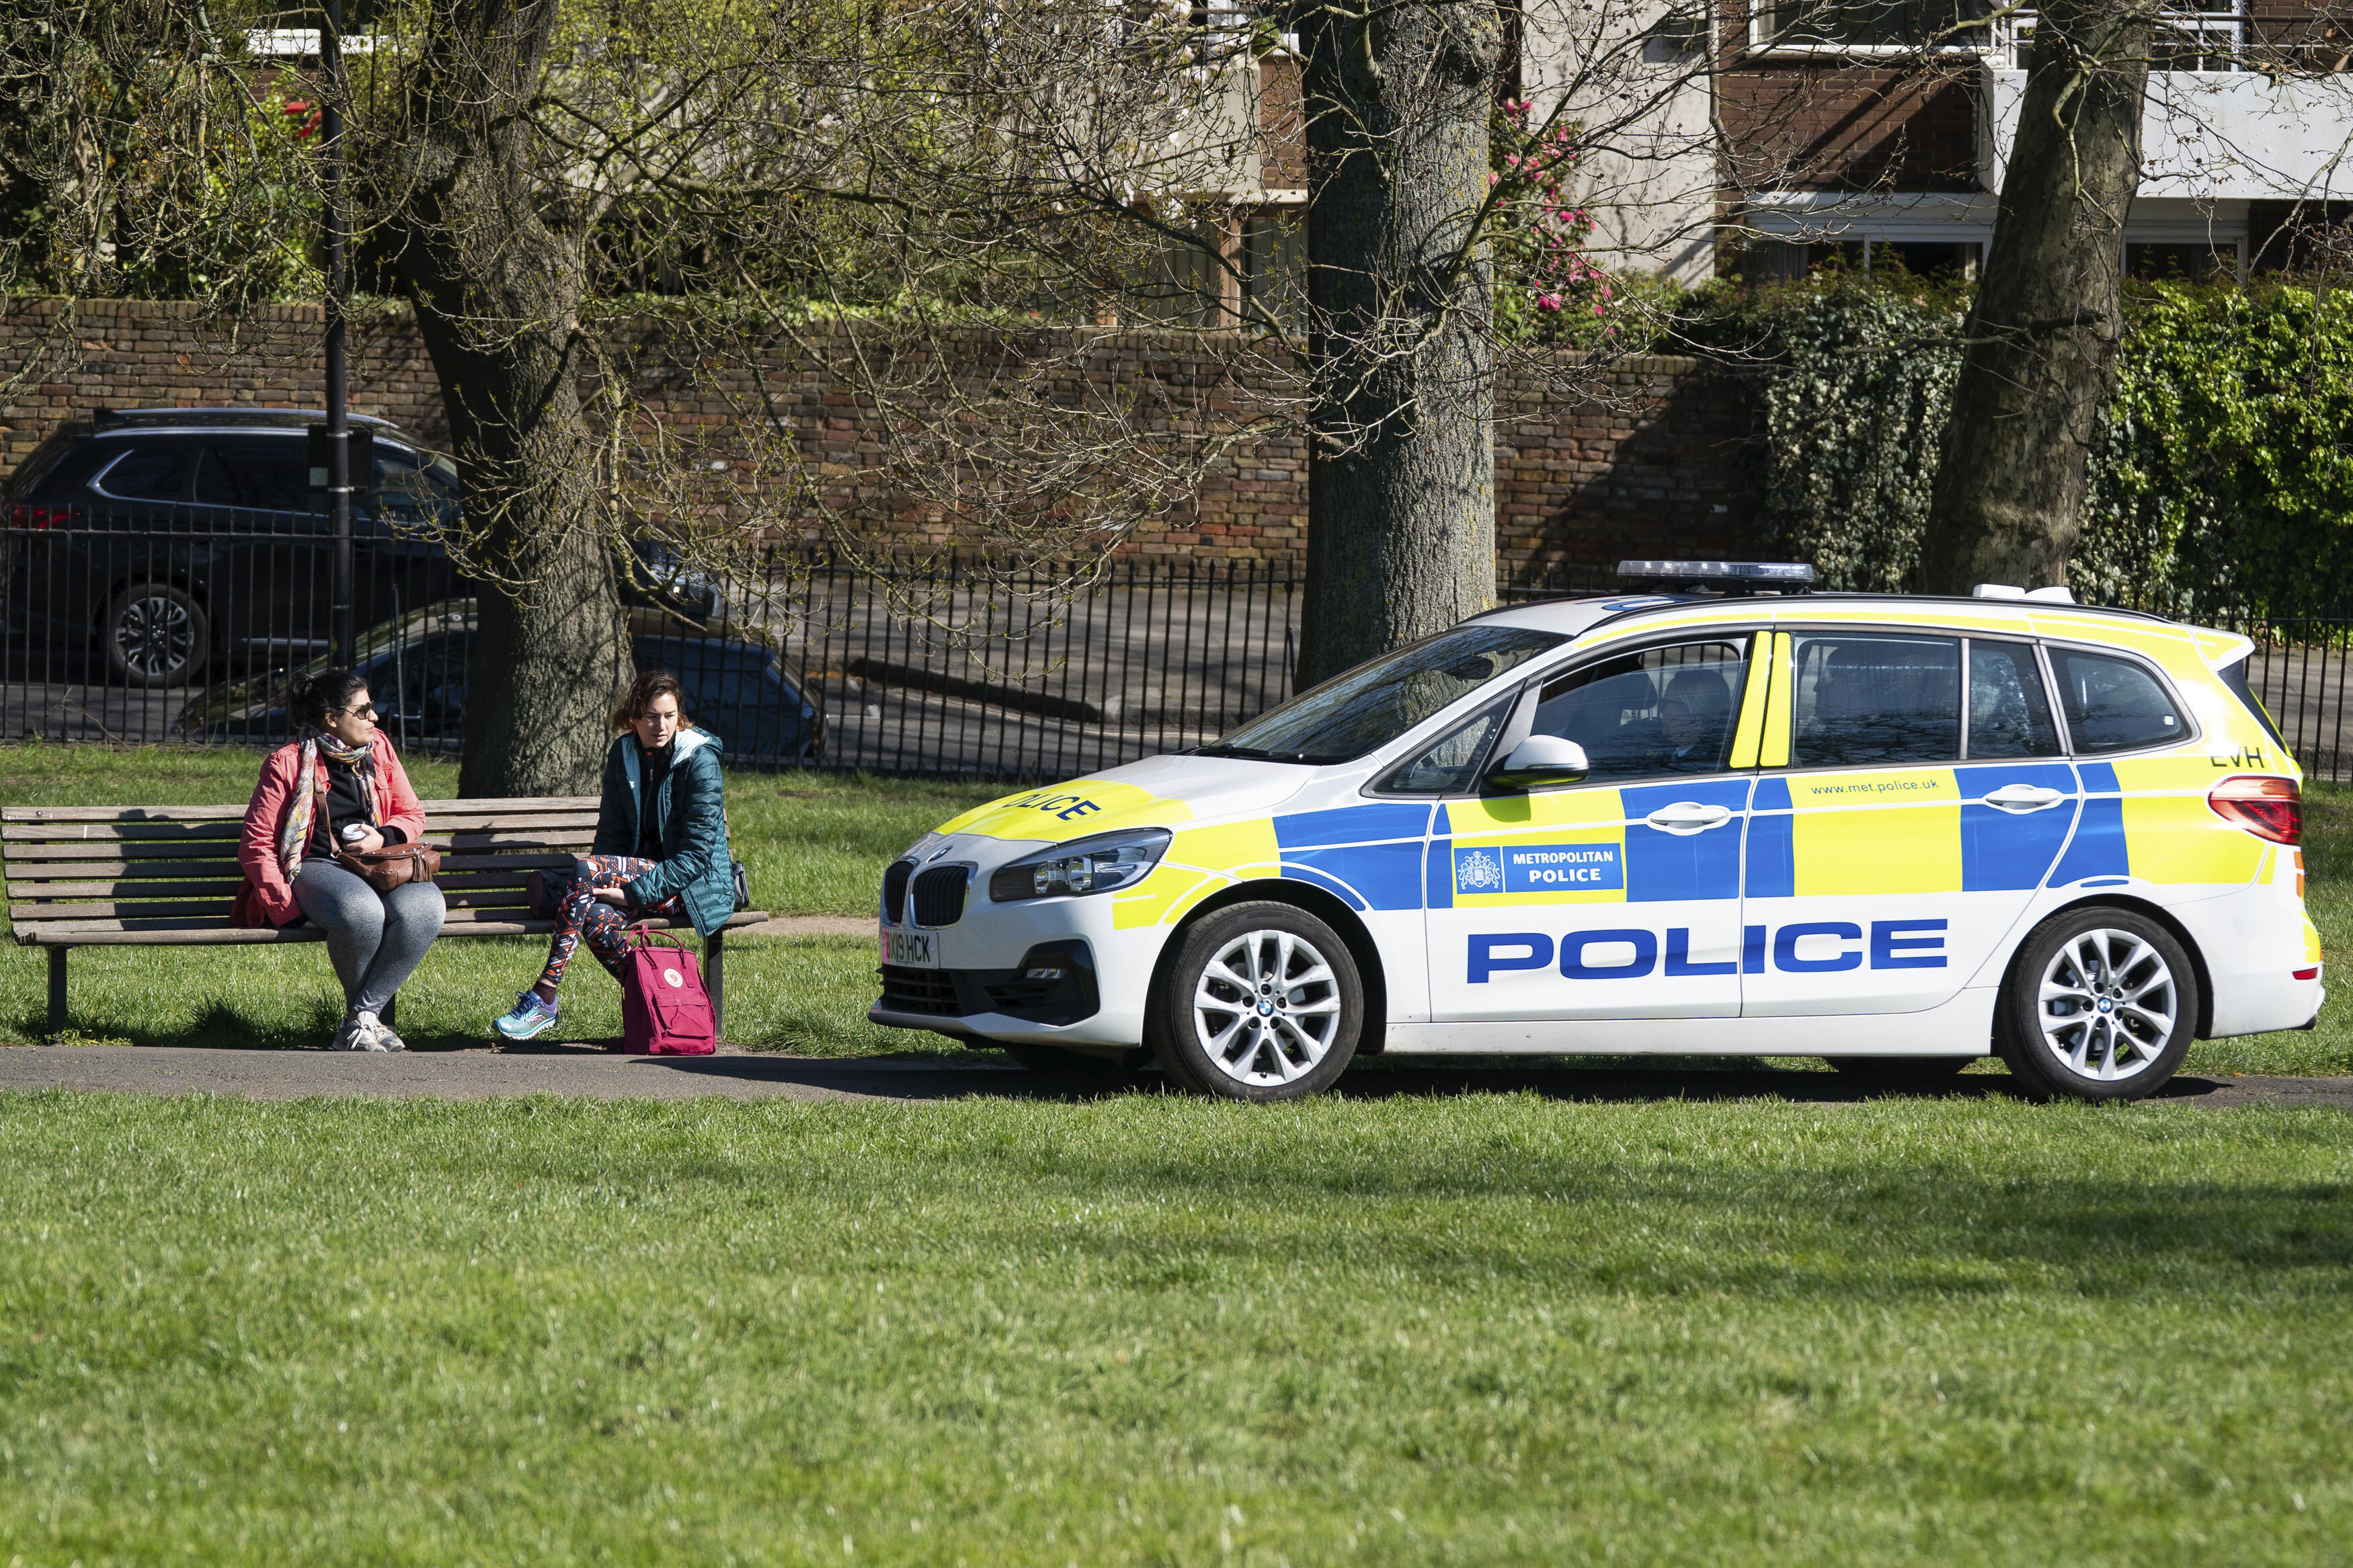 Police ask two women to move on in Primrose Hill, London, Sunday April 5, 2020, as the UK continues in lockdown to help curb the spread of the coronavirus. The new coronavirus causes mild or moderate symptoms for most people, but for some, especially older adults and people with existing health problems, it can cause more severe illness or death.(Aaron Chown/PA via AP)